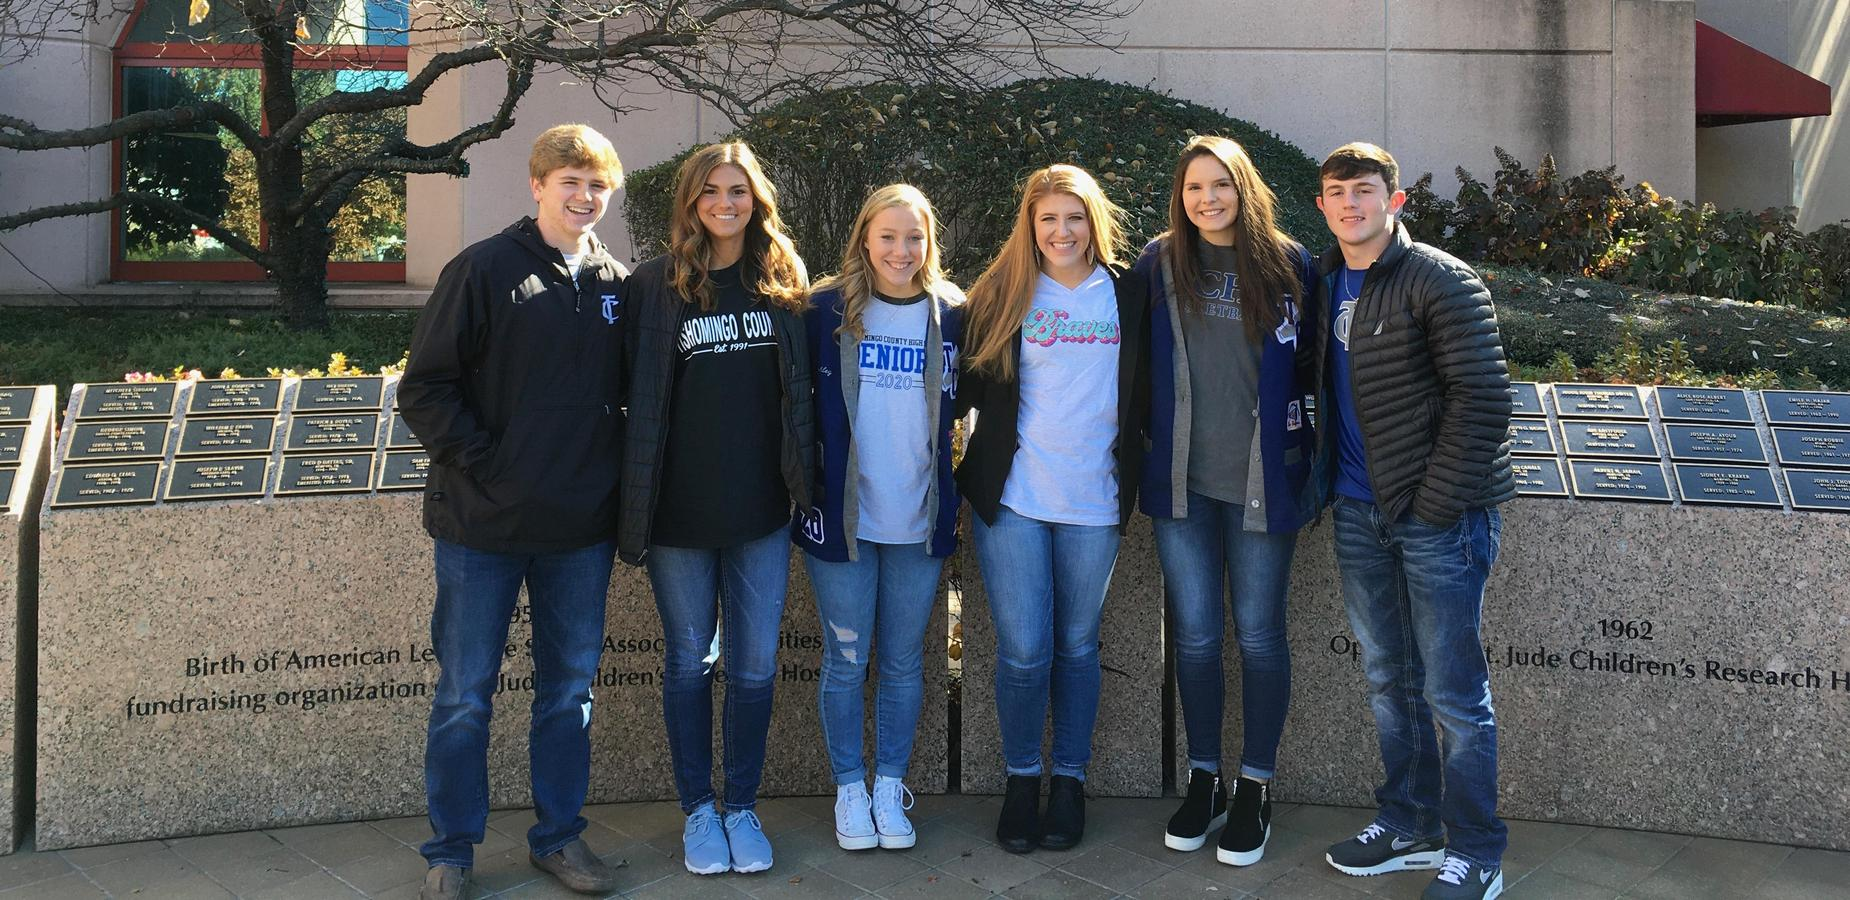 Seniors Visit St Jude to deliver donations